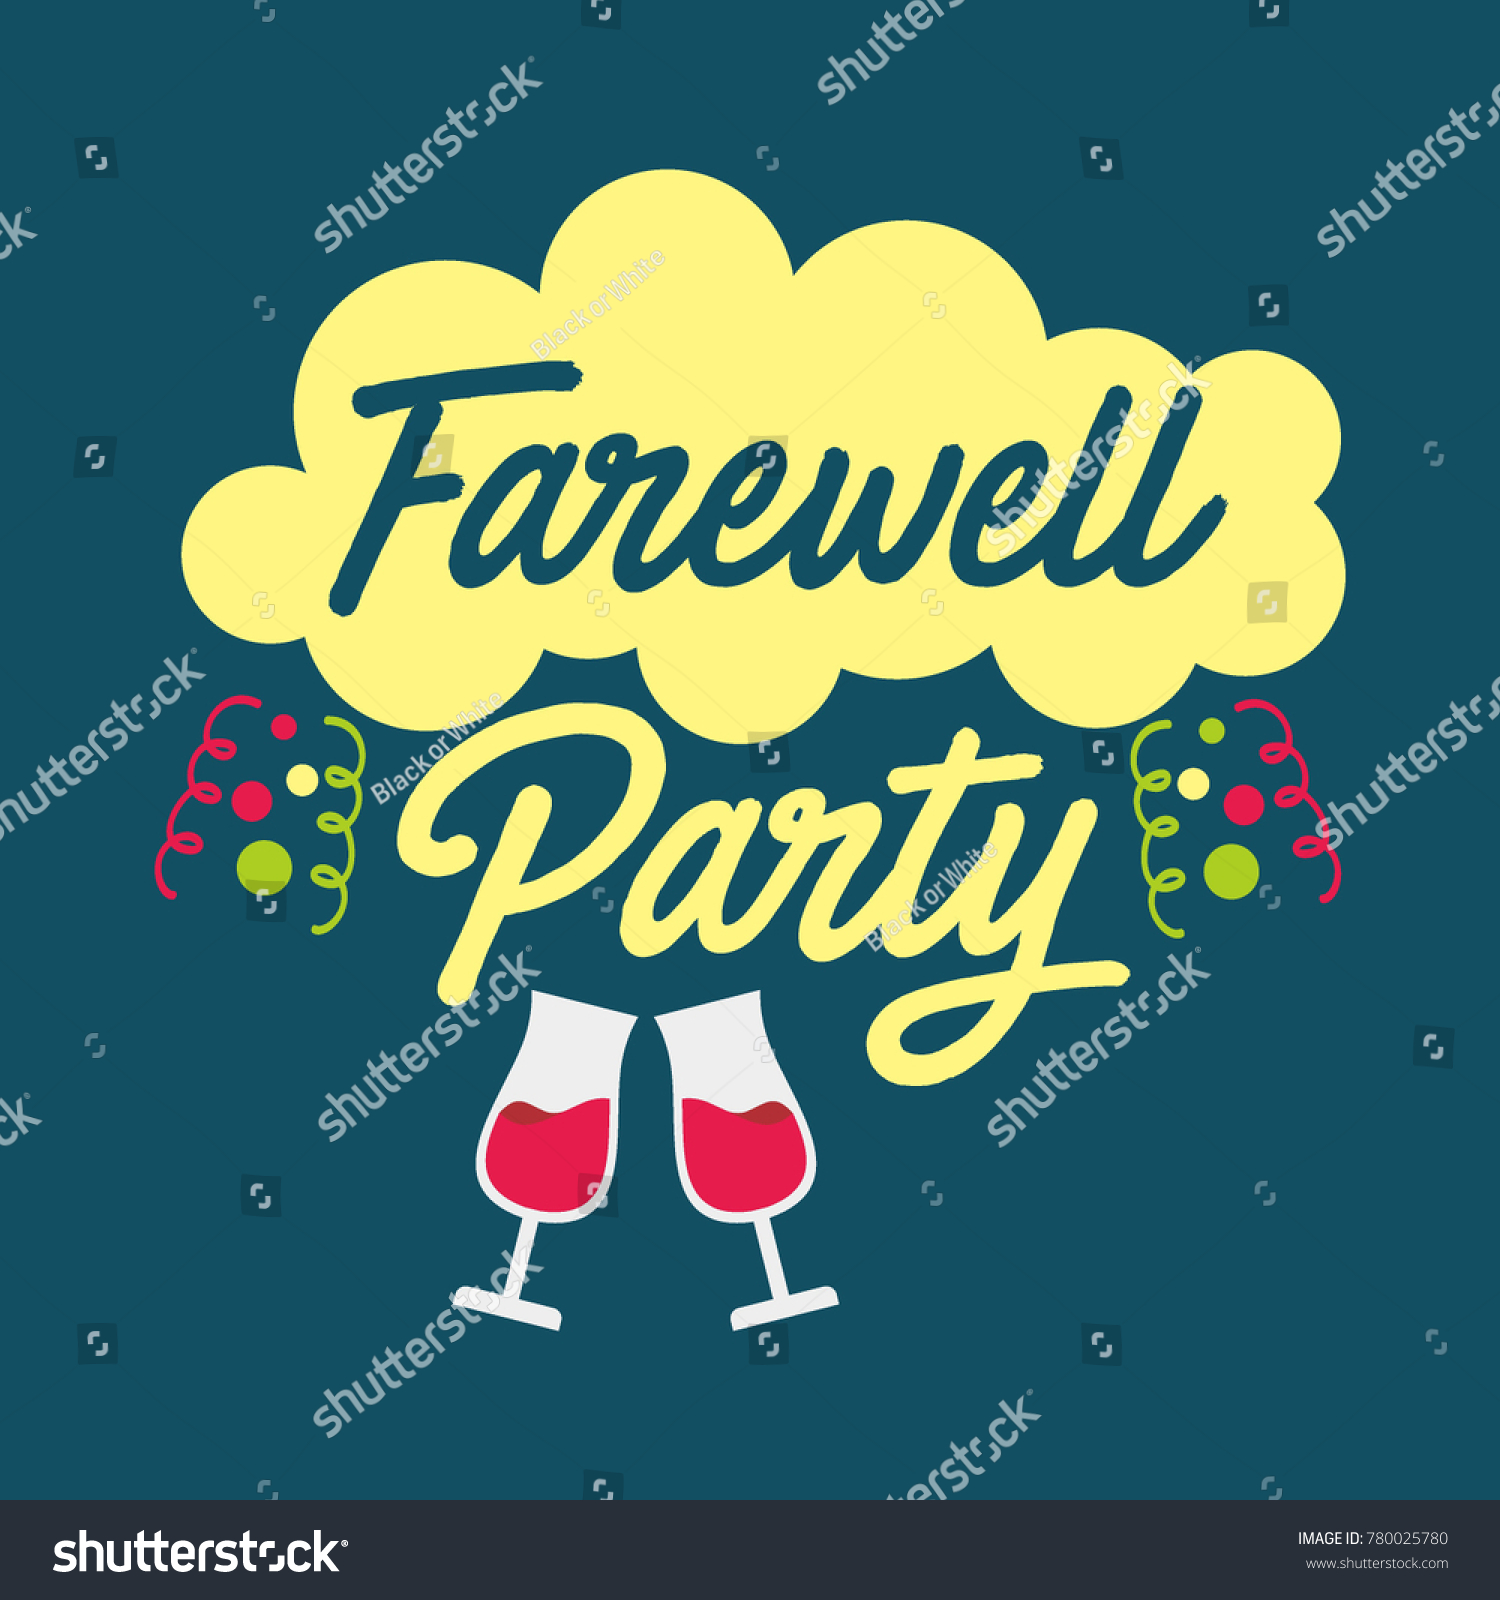 farewell party posters designs